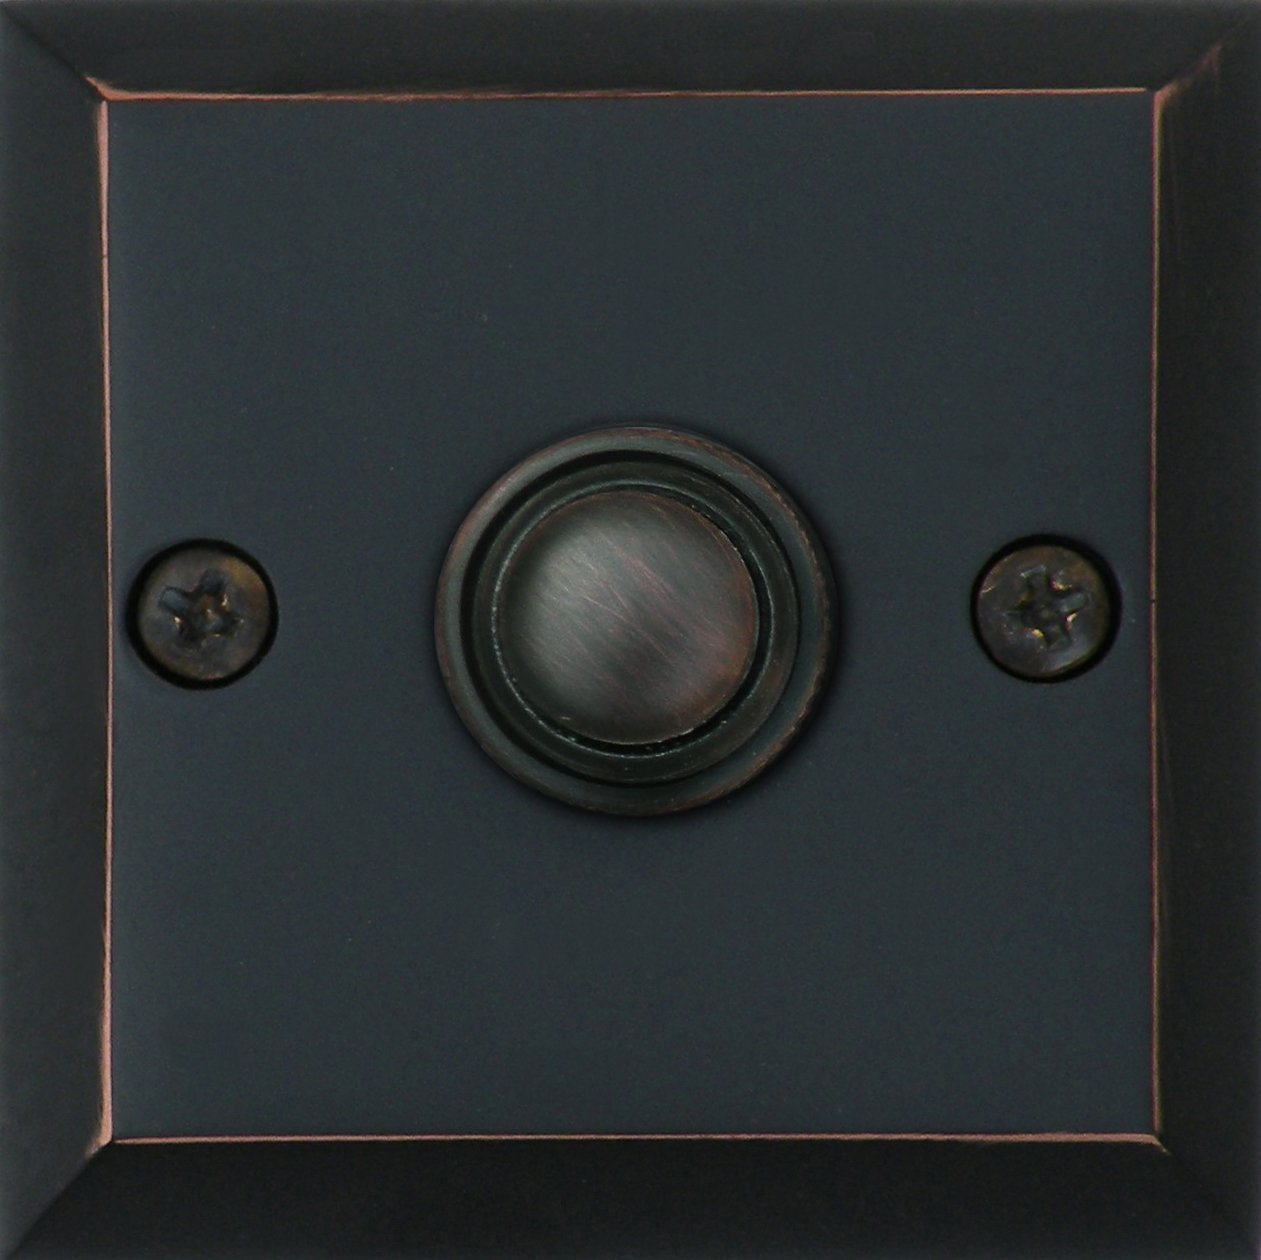 Knoxx Hardware BP3BBXORB Oil Rubbed Bronze 2.5'' Metro Square Door Bell Button, 1-Pack